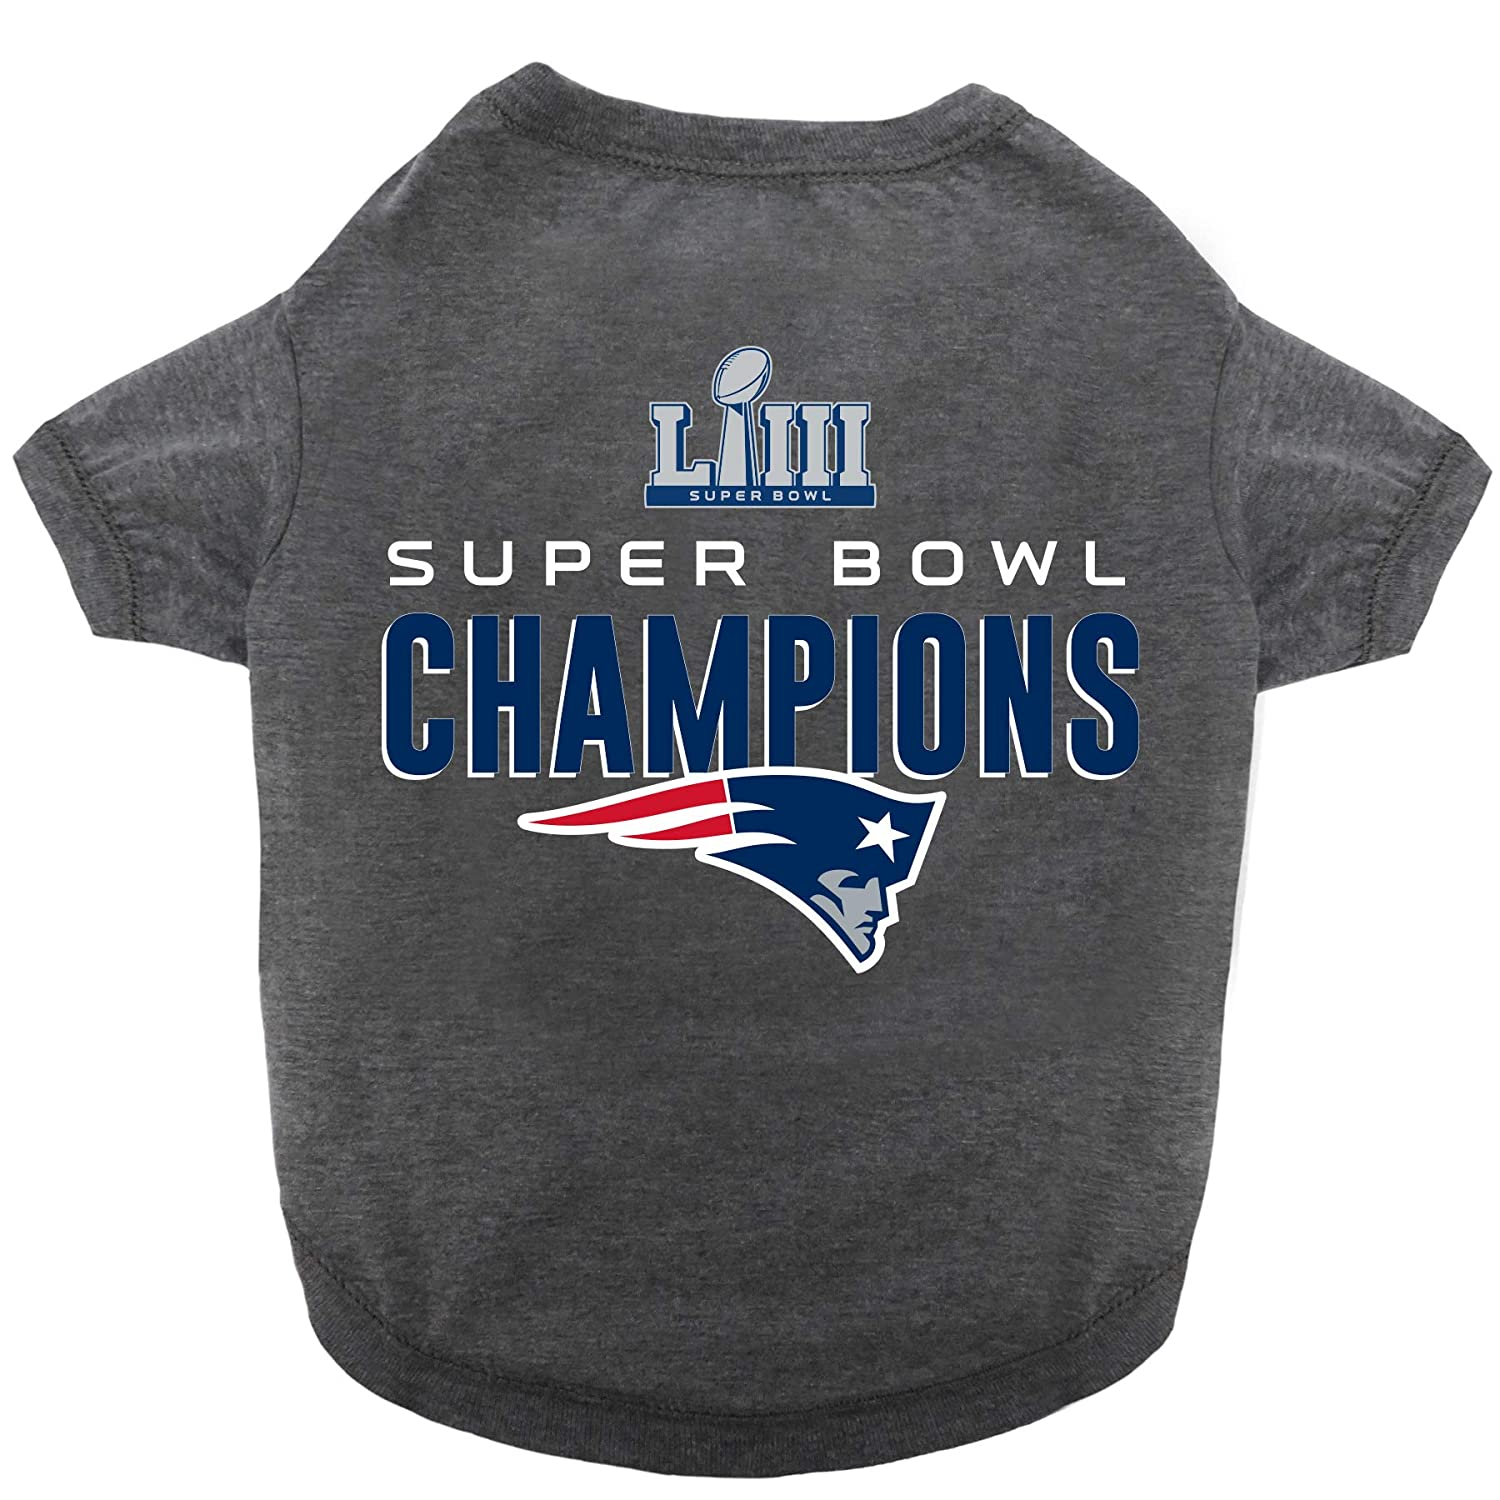 cc7c6e3125b Amazon.com   NFL New England Patriots 2018-2019 Super Bowl LIII  Championship Pet Tee Shirt   Sports   Outdoors